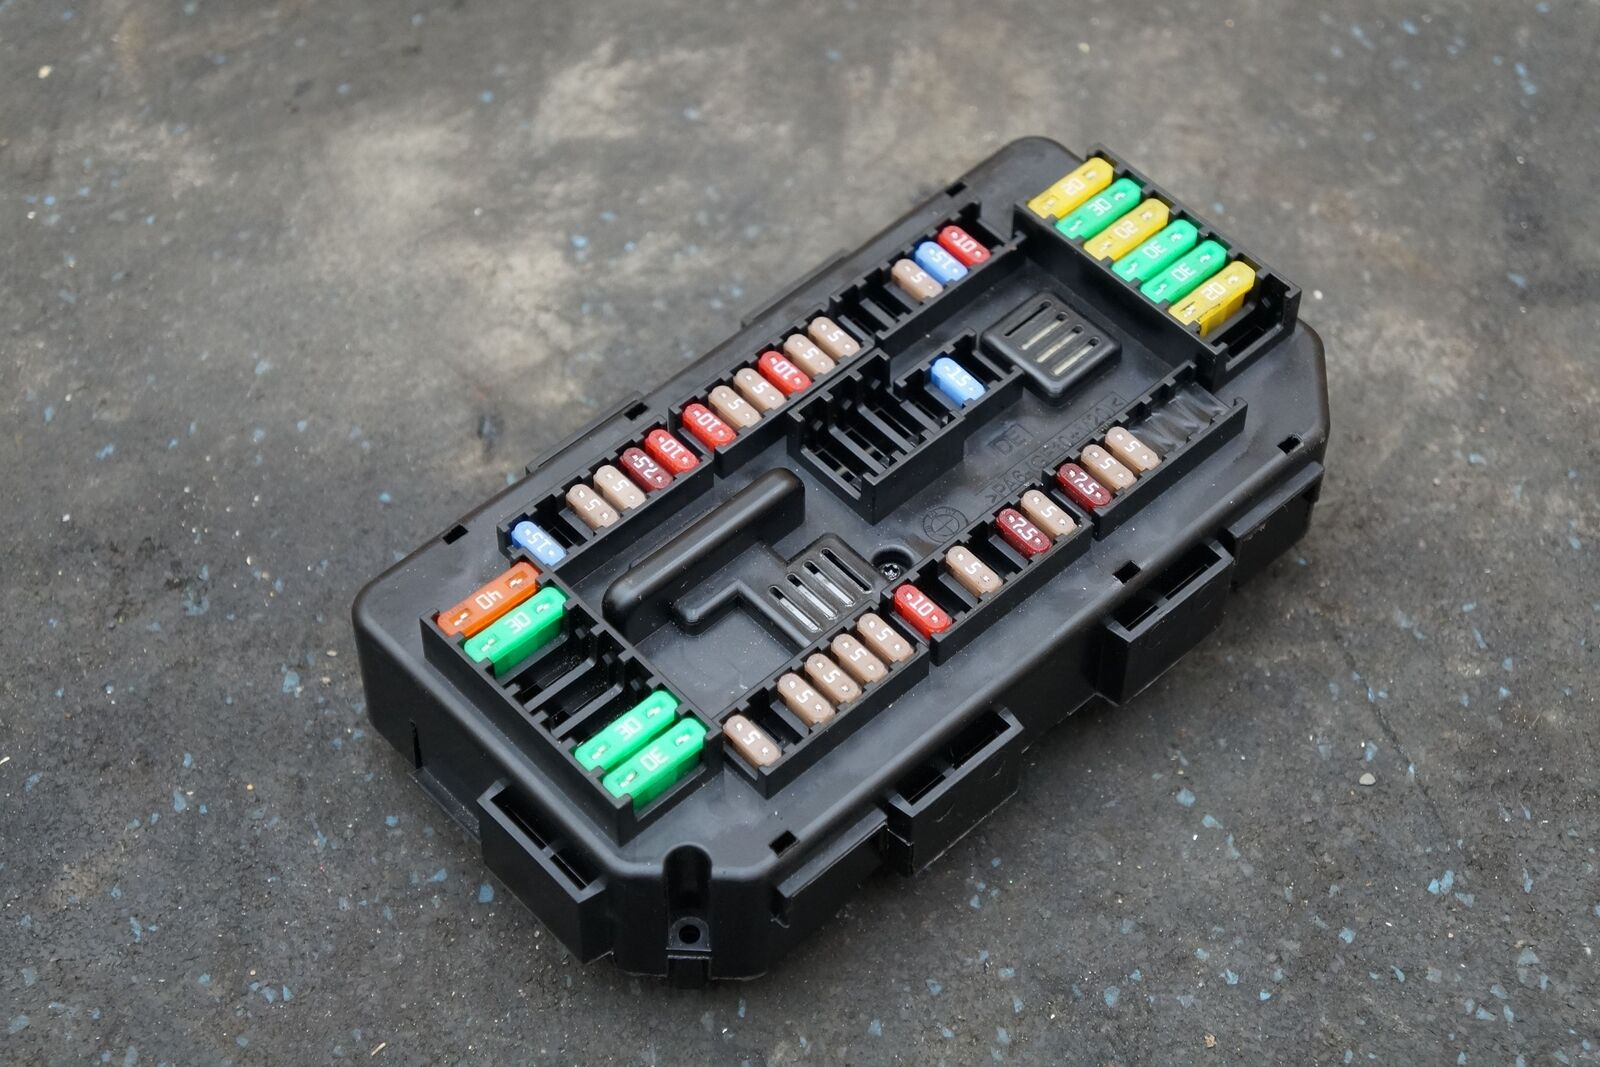 Bmw 328i Fuse Diagram Wiring Library Thread Need Fuses 97 Lincoln Continental Box On Trusted 2002 325ci